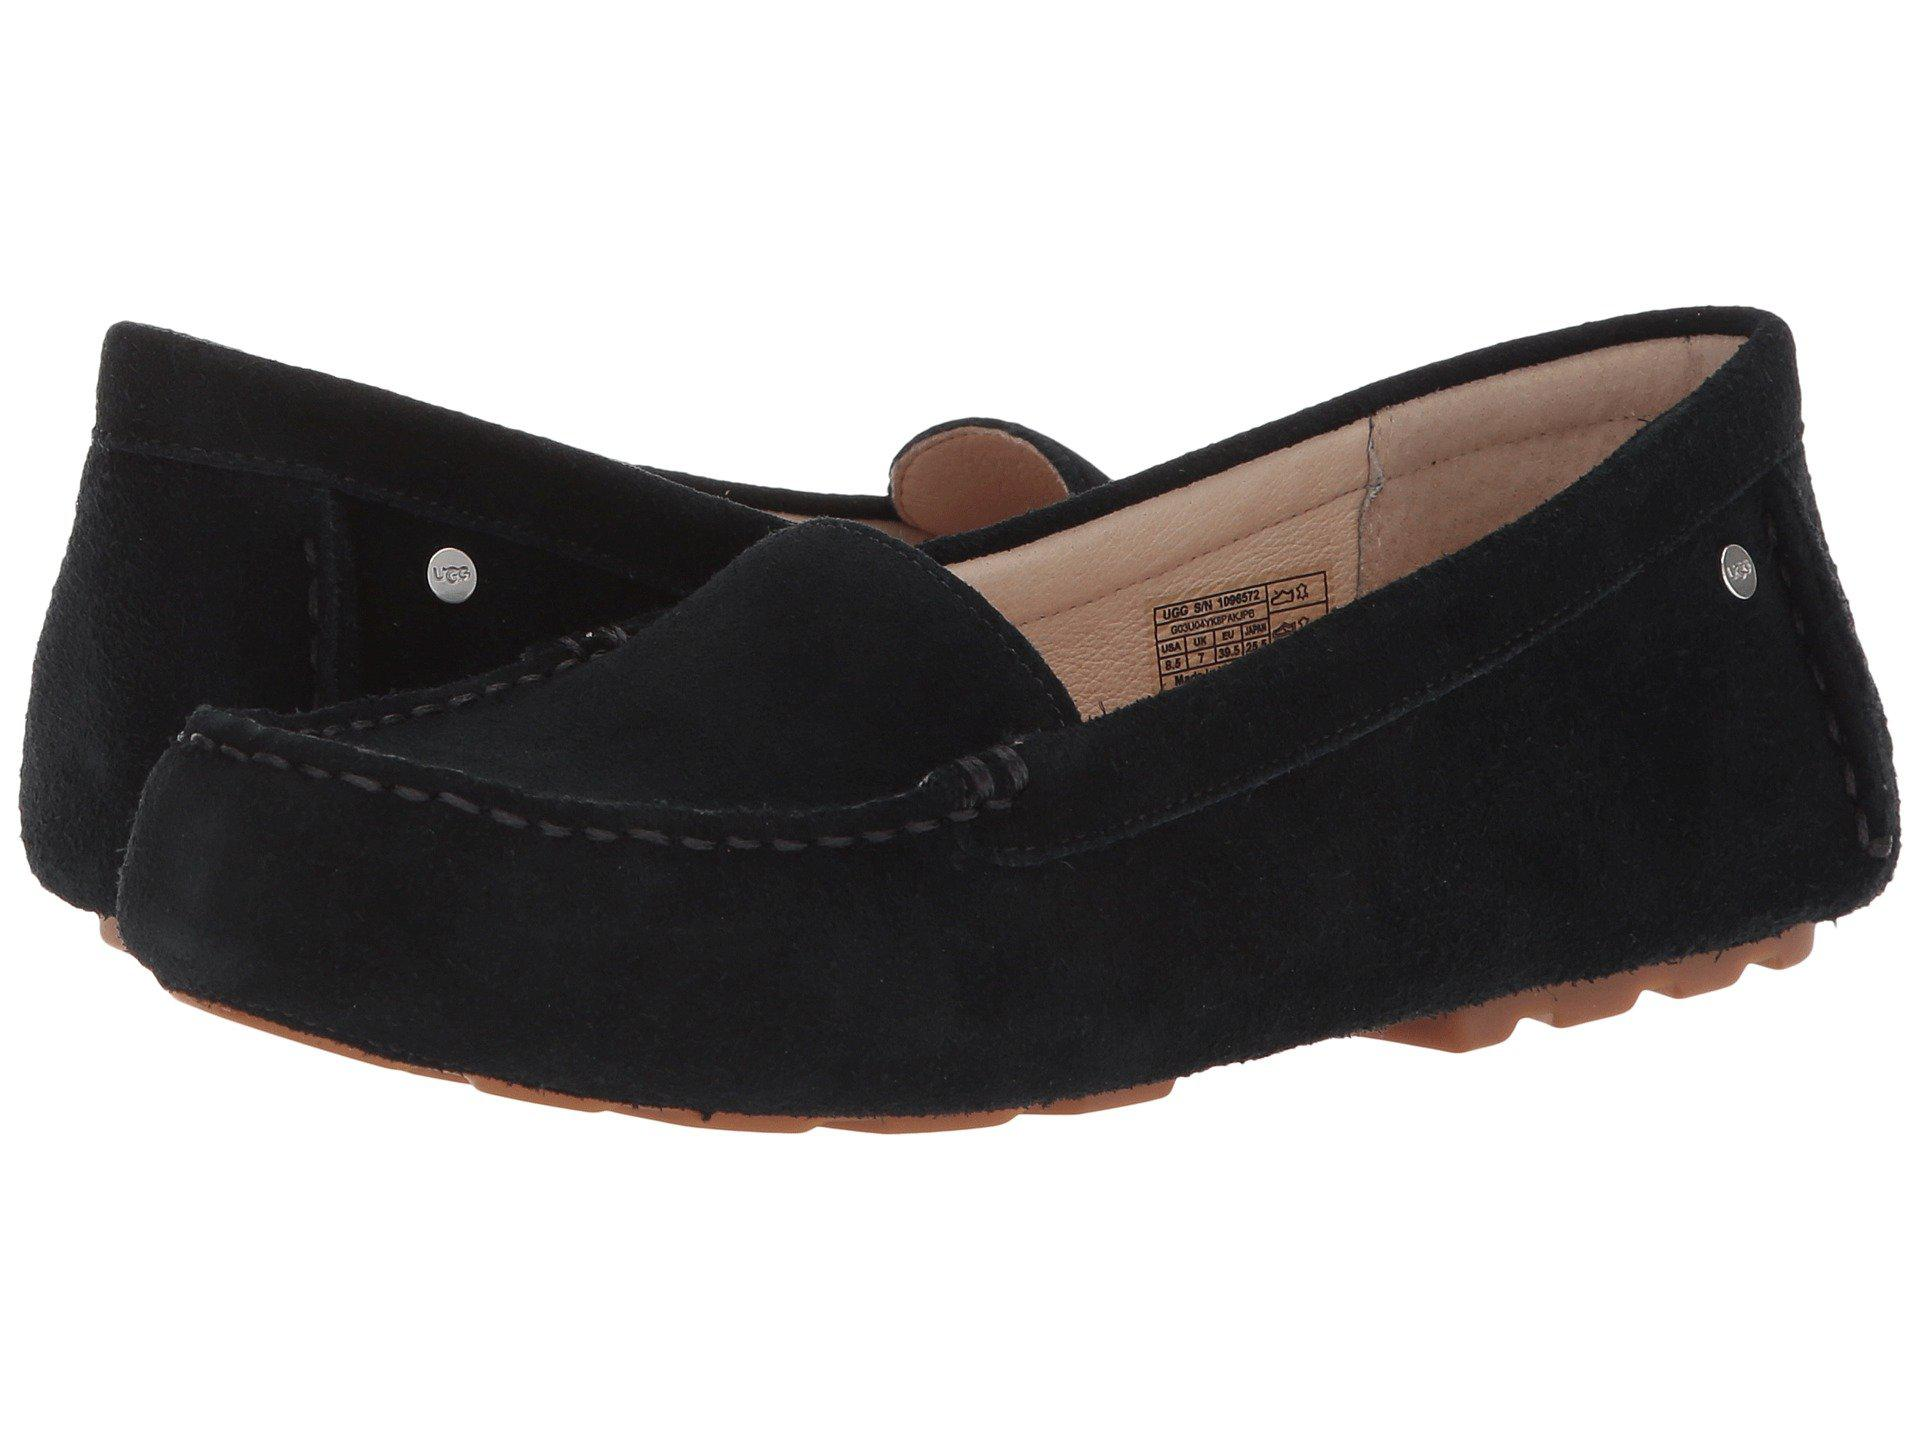 d917390f011 Lyst - UGG Milana (chestnut 1) Women s Dress Flat Shoes in Black